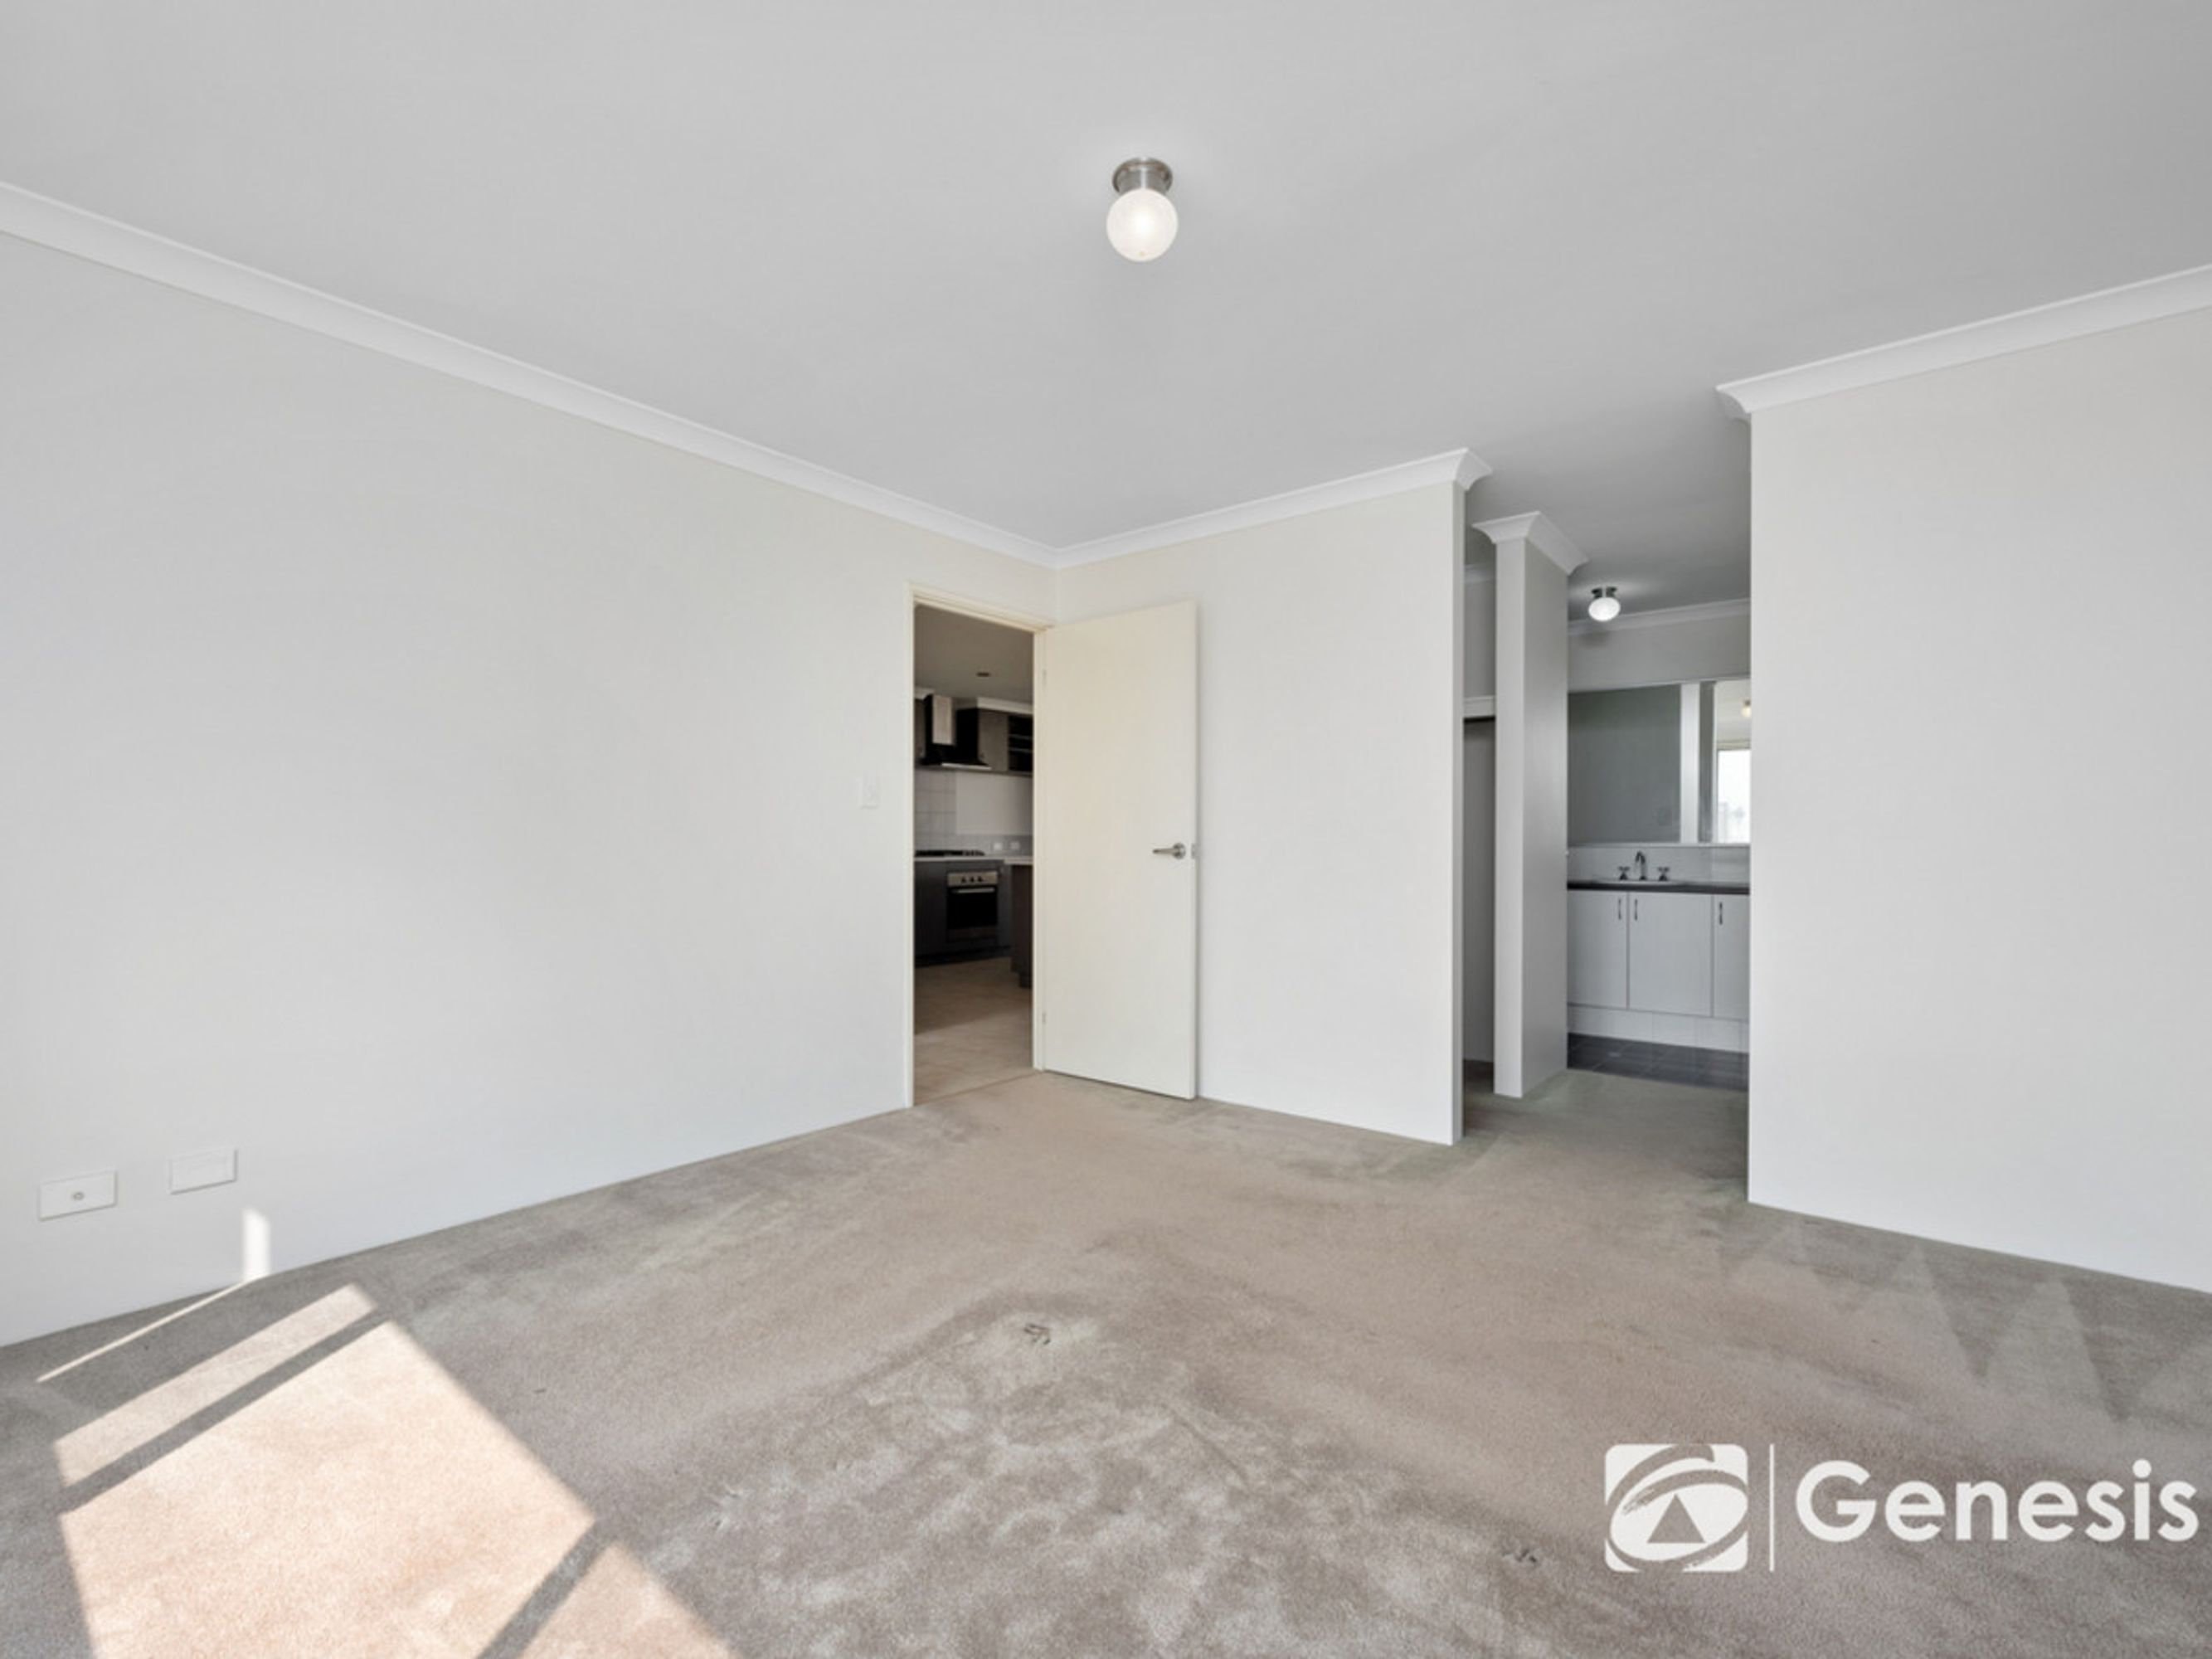 35 Balyat Way, Wattle Grove, WA 6107